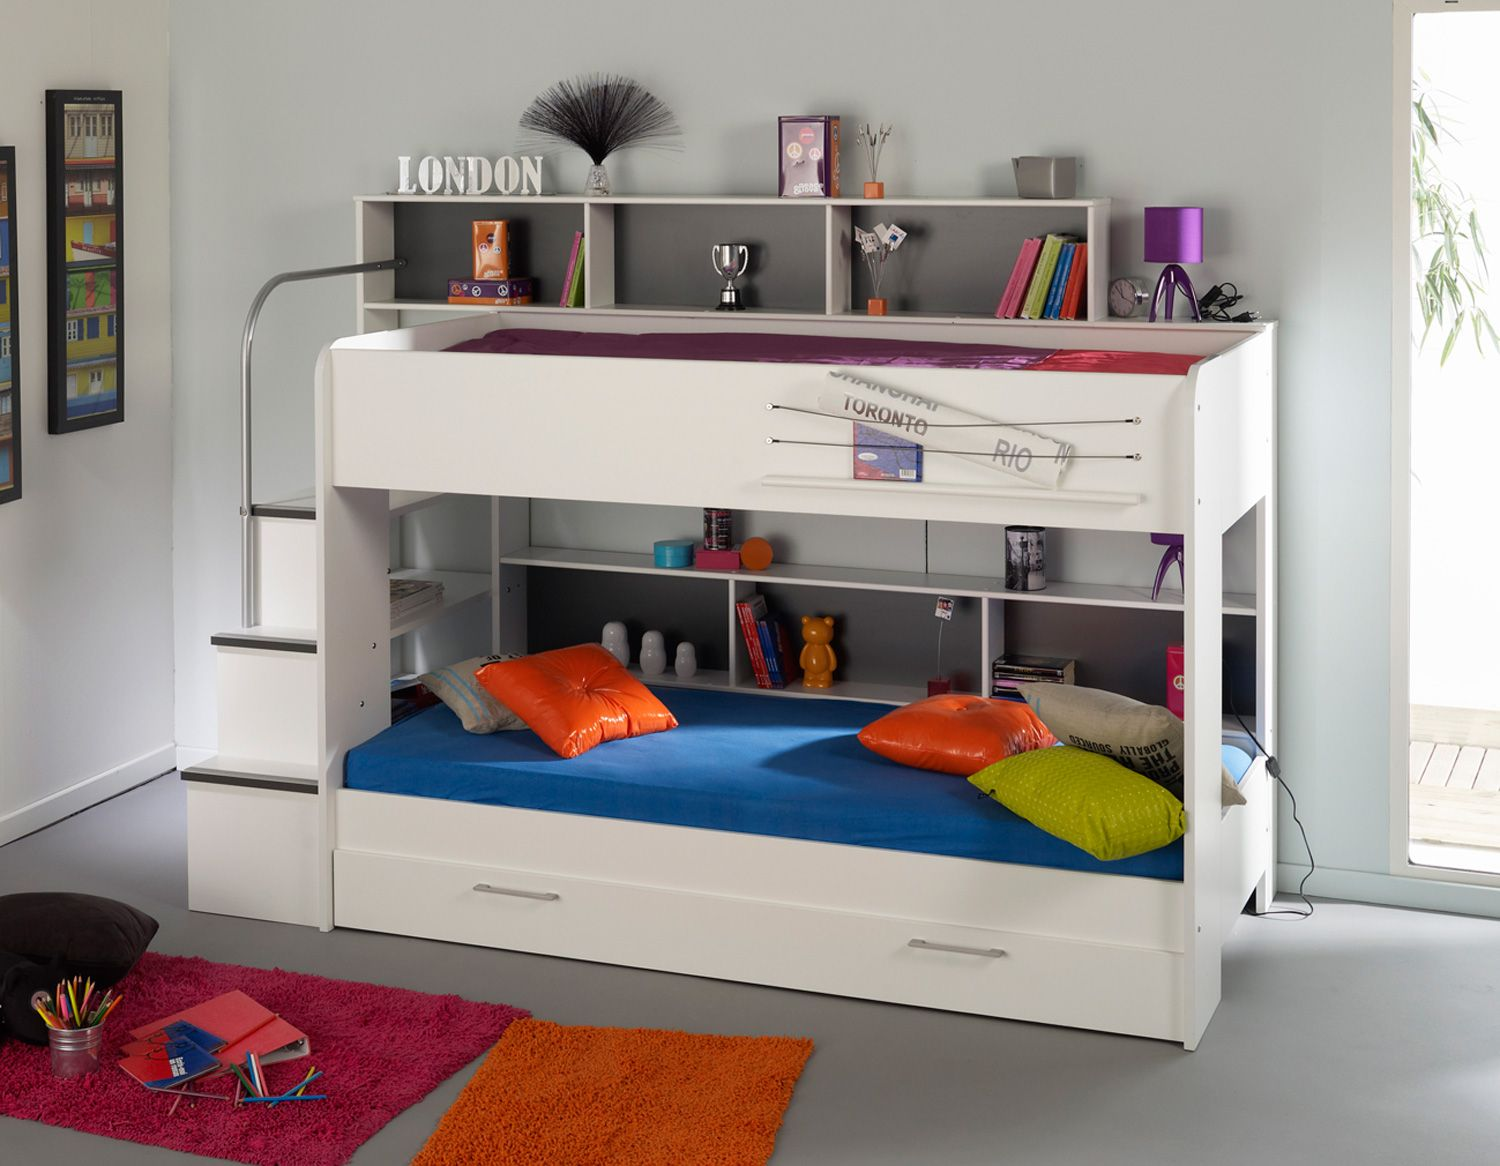 Space Saver Beds For Kids 30 space saving beds for small rooms | bunk bed, bunk bed designs